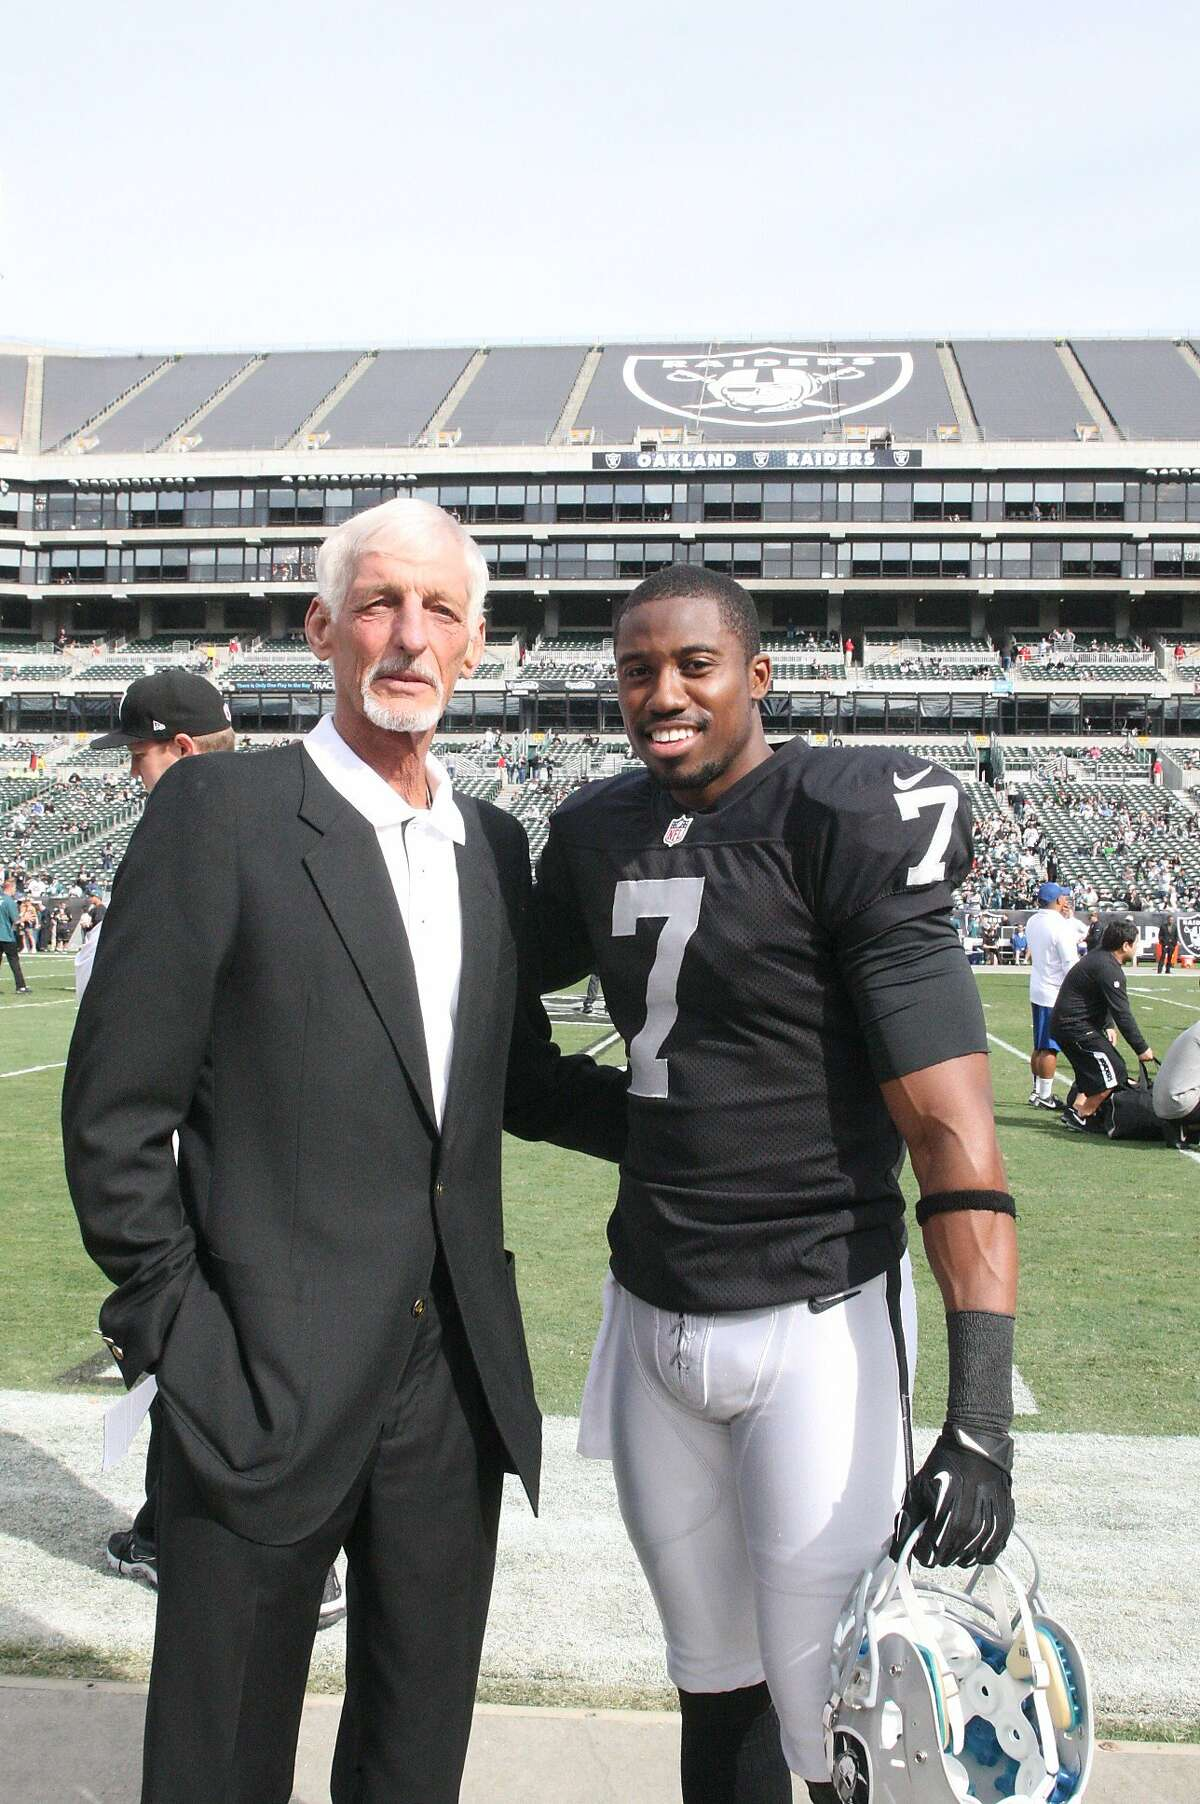 Ray Guy, shown here with current Raiders punter Marquette King before the Oakland-Philadelphia game on Nov. 3, will find out next Saturday (Feb. 1) if he has been chosen the first punter in the NFL Hall of Fame.